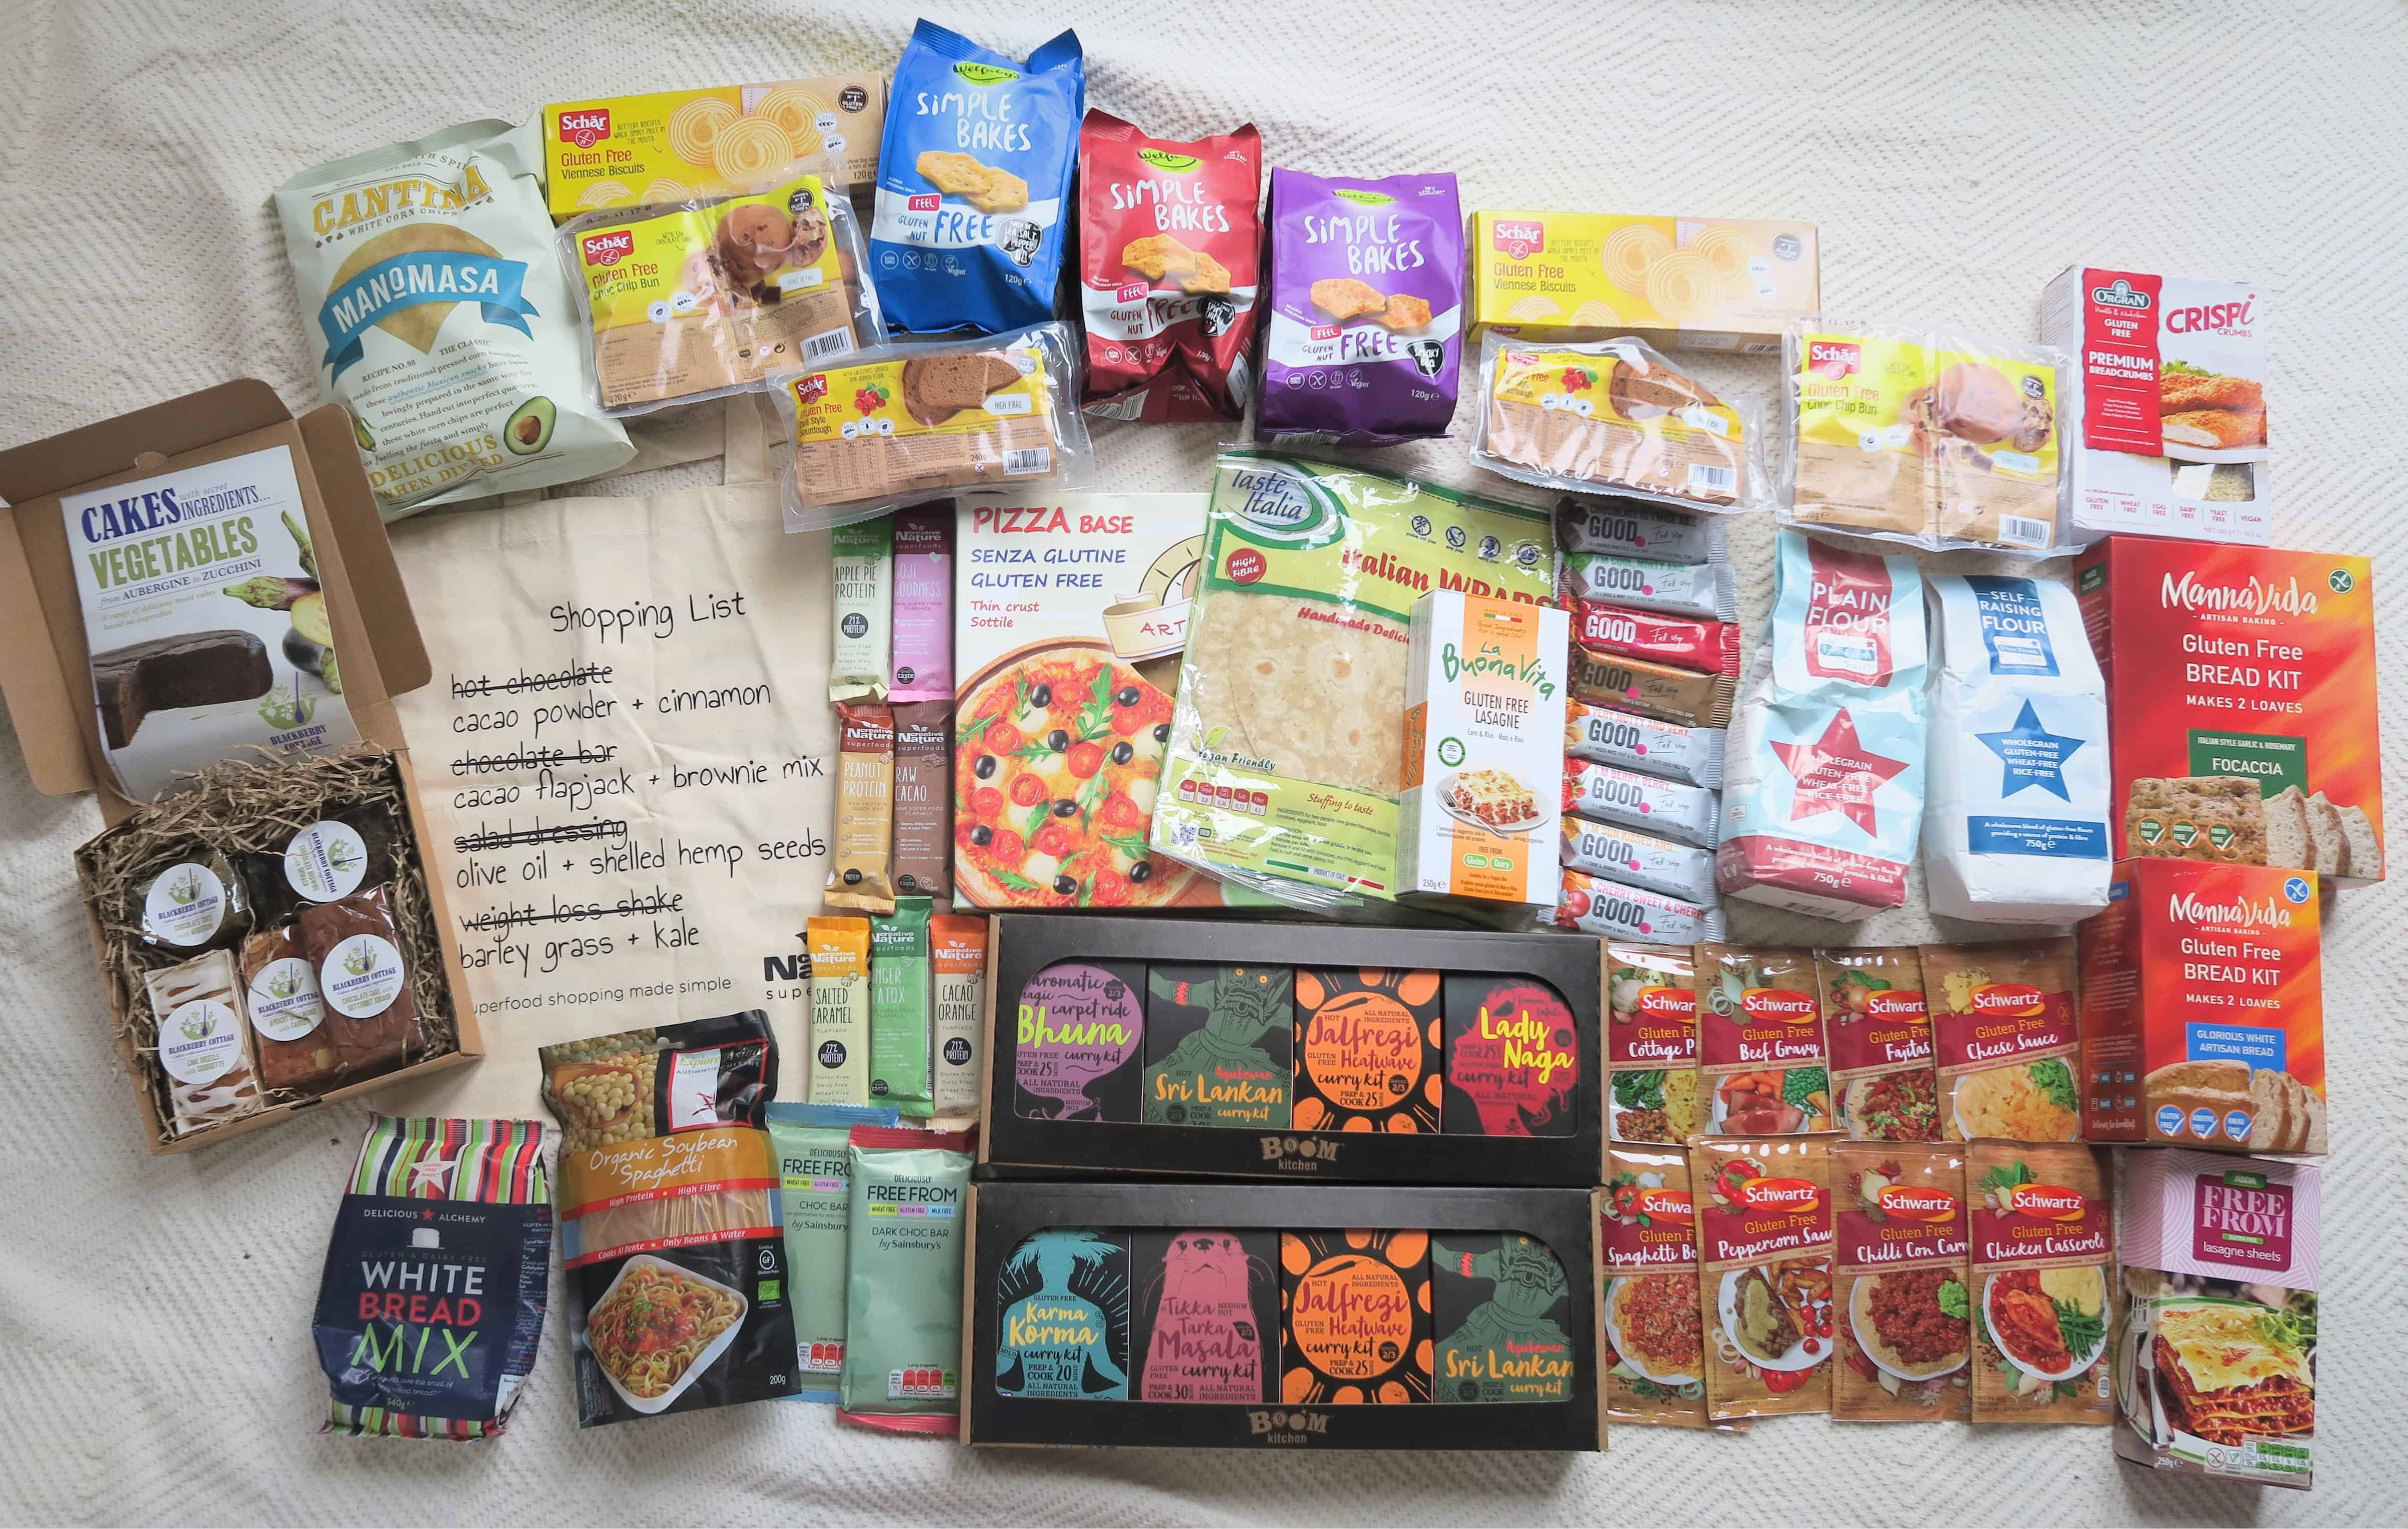 gluten free competition win a hamper the gluten free blogger 9_Fotor